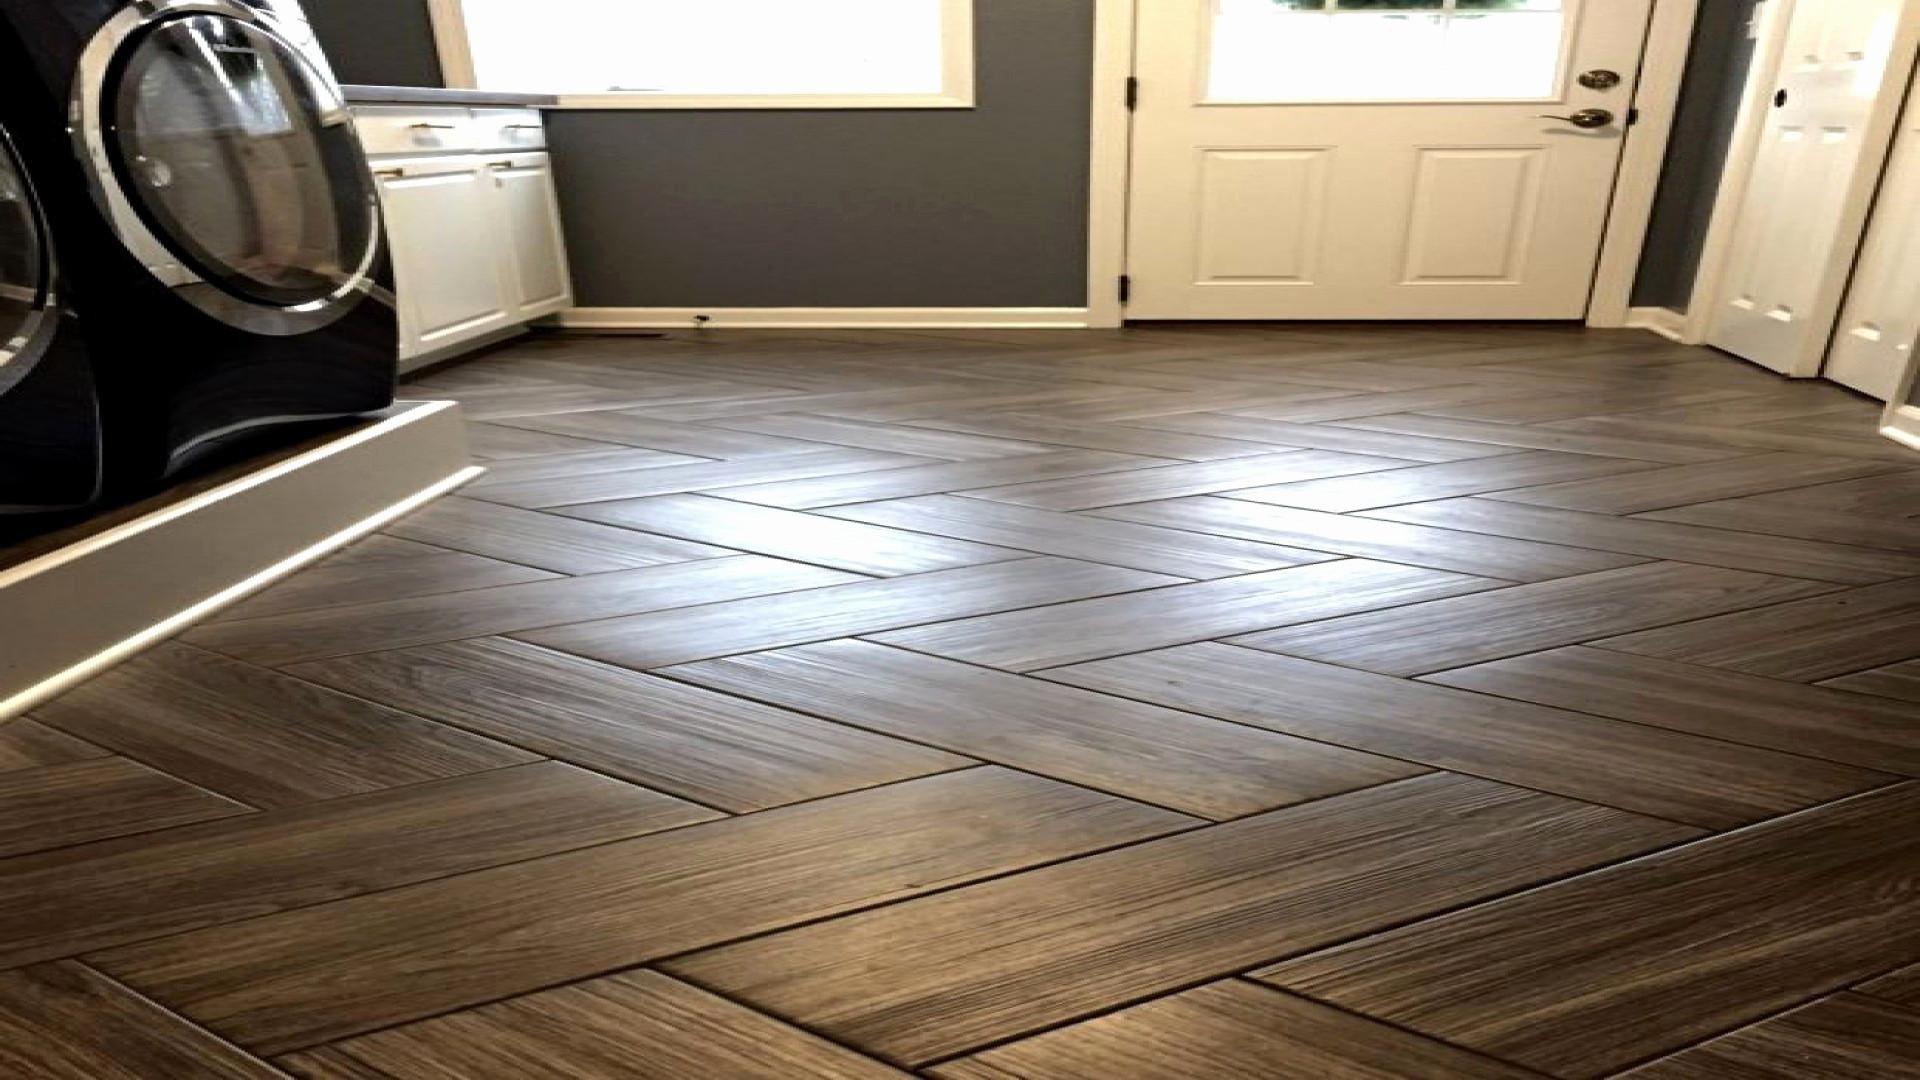 how to diy hardwood floors of awesome of cheap diy flooring ideas pictures artsvisuelscaribeens com regarding kitchen joys kitchen joys kitchen 0d kitchens design ideas design scheme diy kitchen decor